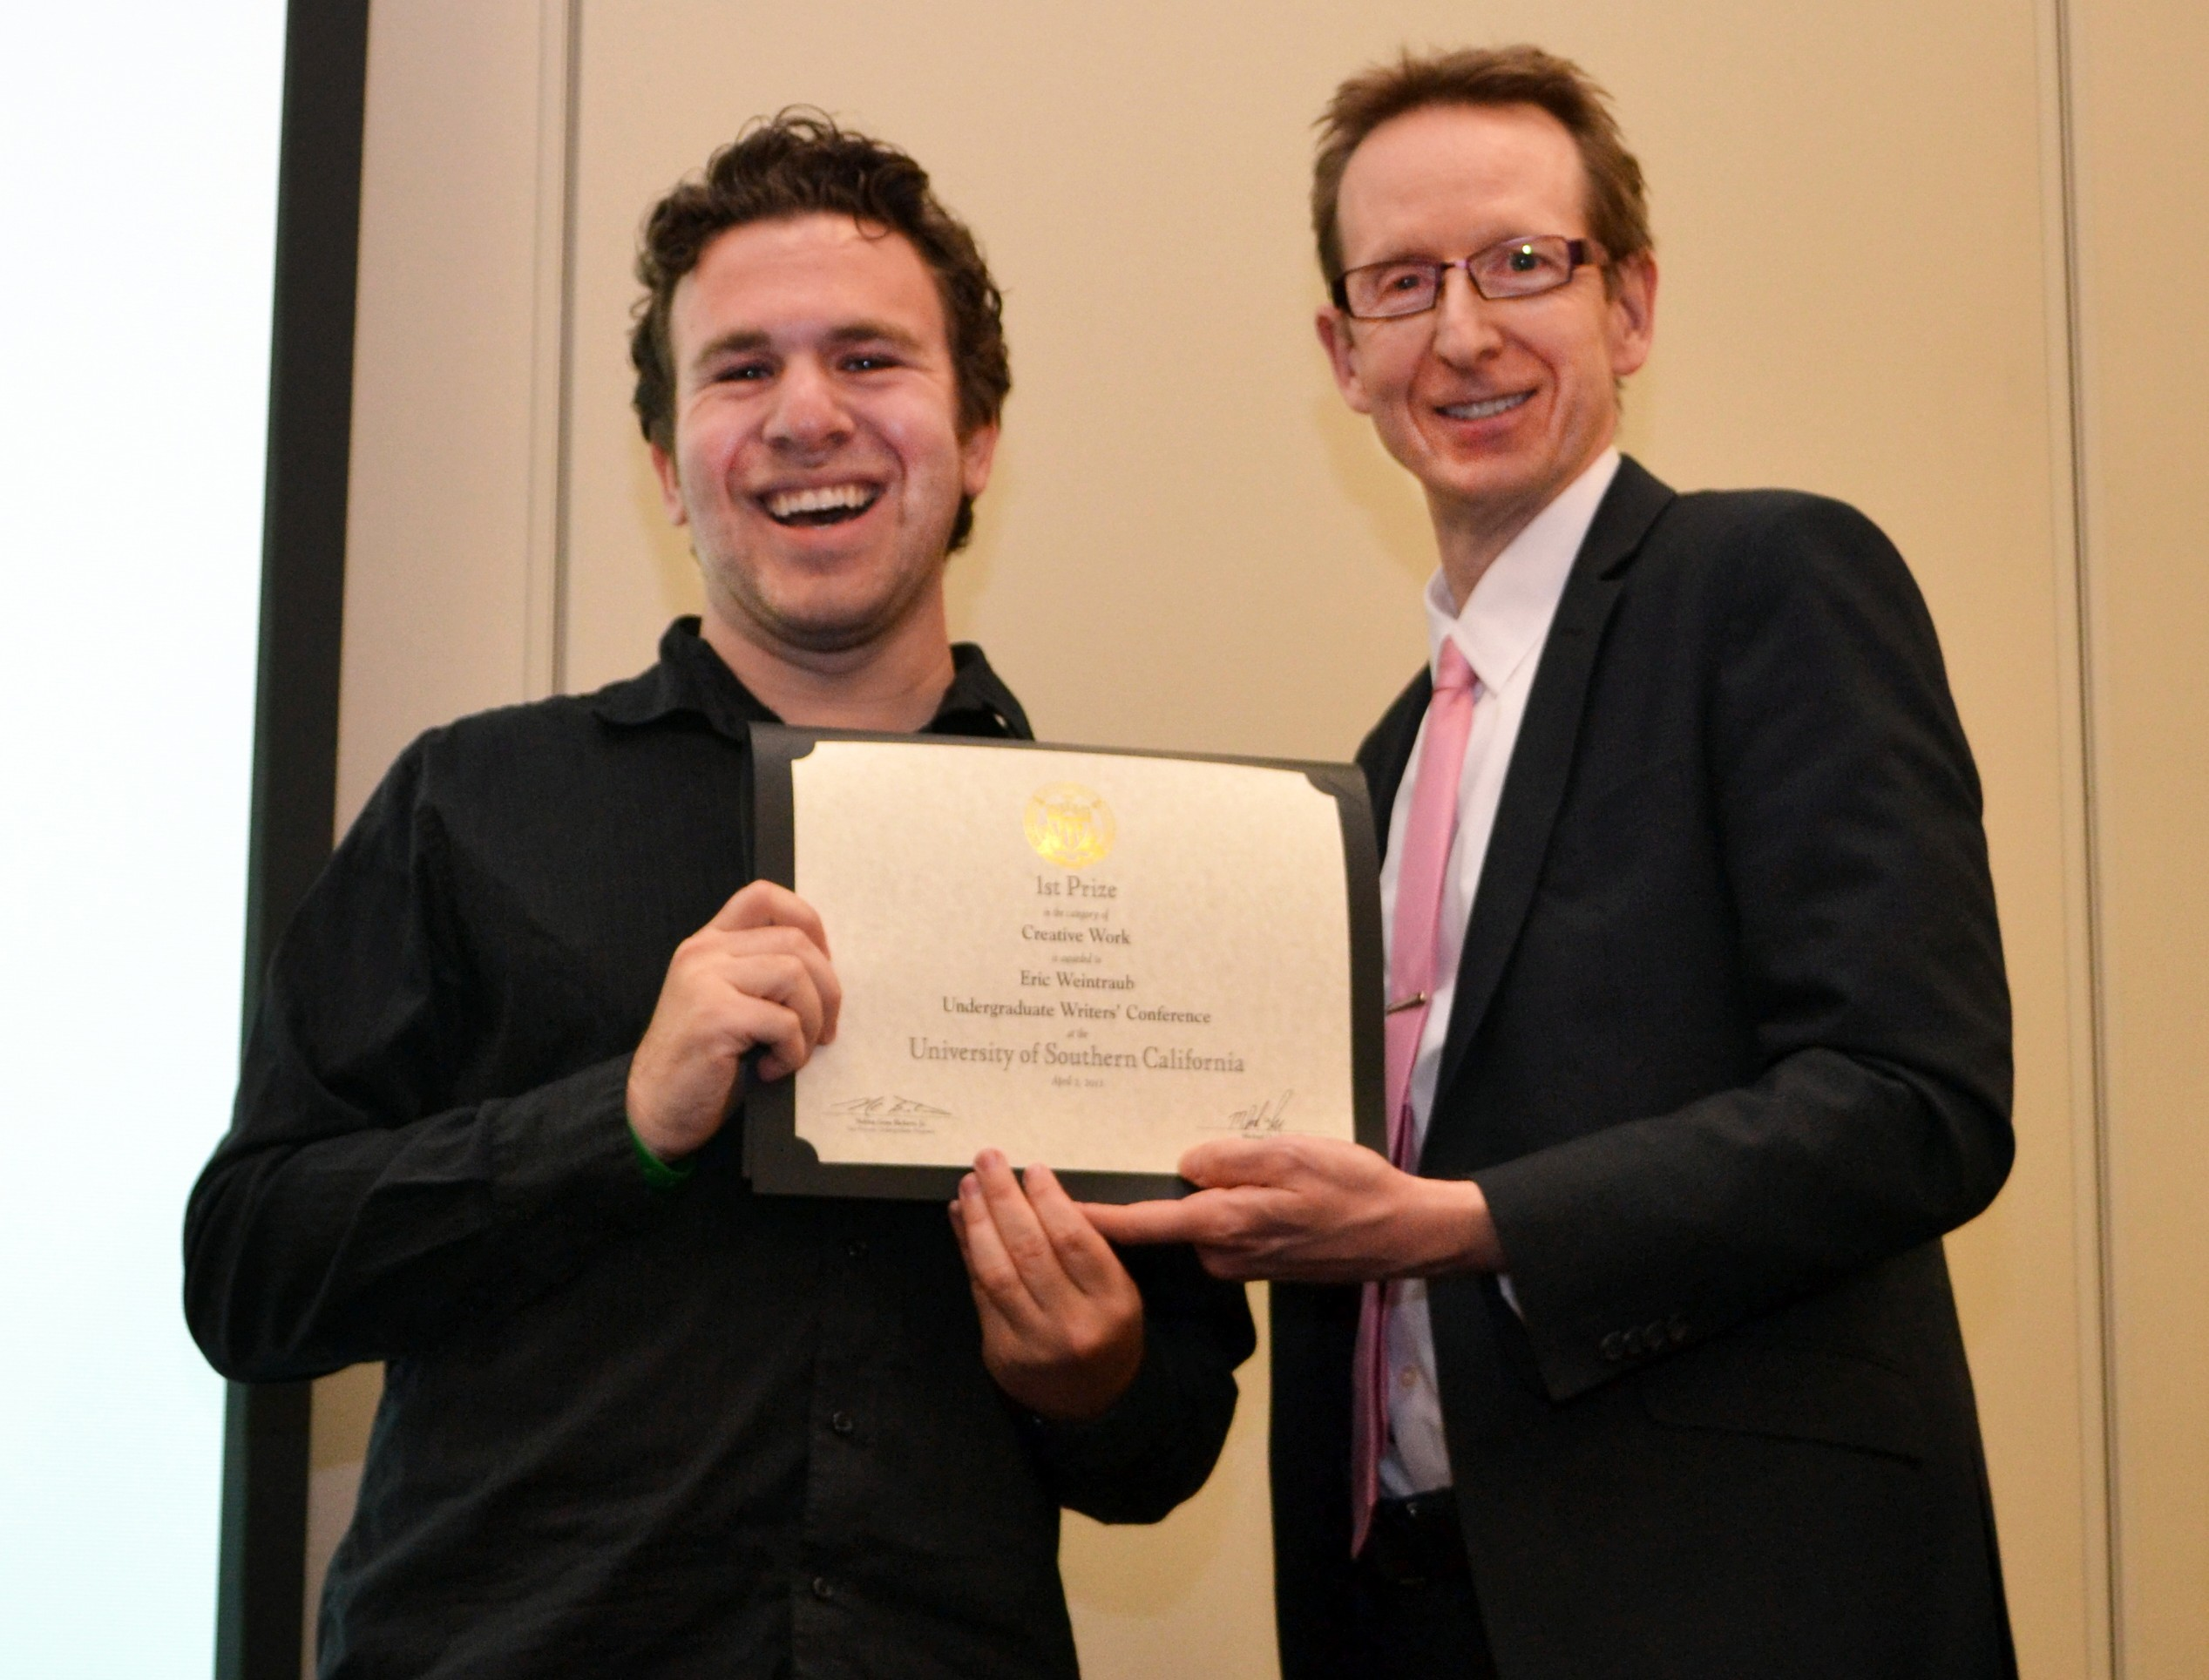 Eric Weintraub, a senior majoring in narrative studies at USC Dornsife, accepts his first-place prize from Michael Quick, executive vice provost and professor of biological sciences. (Photo/Heather Cartagena)